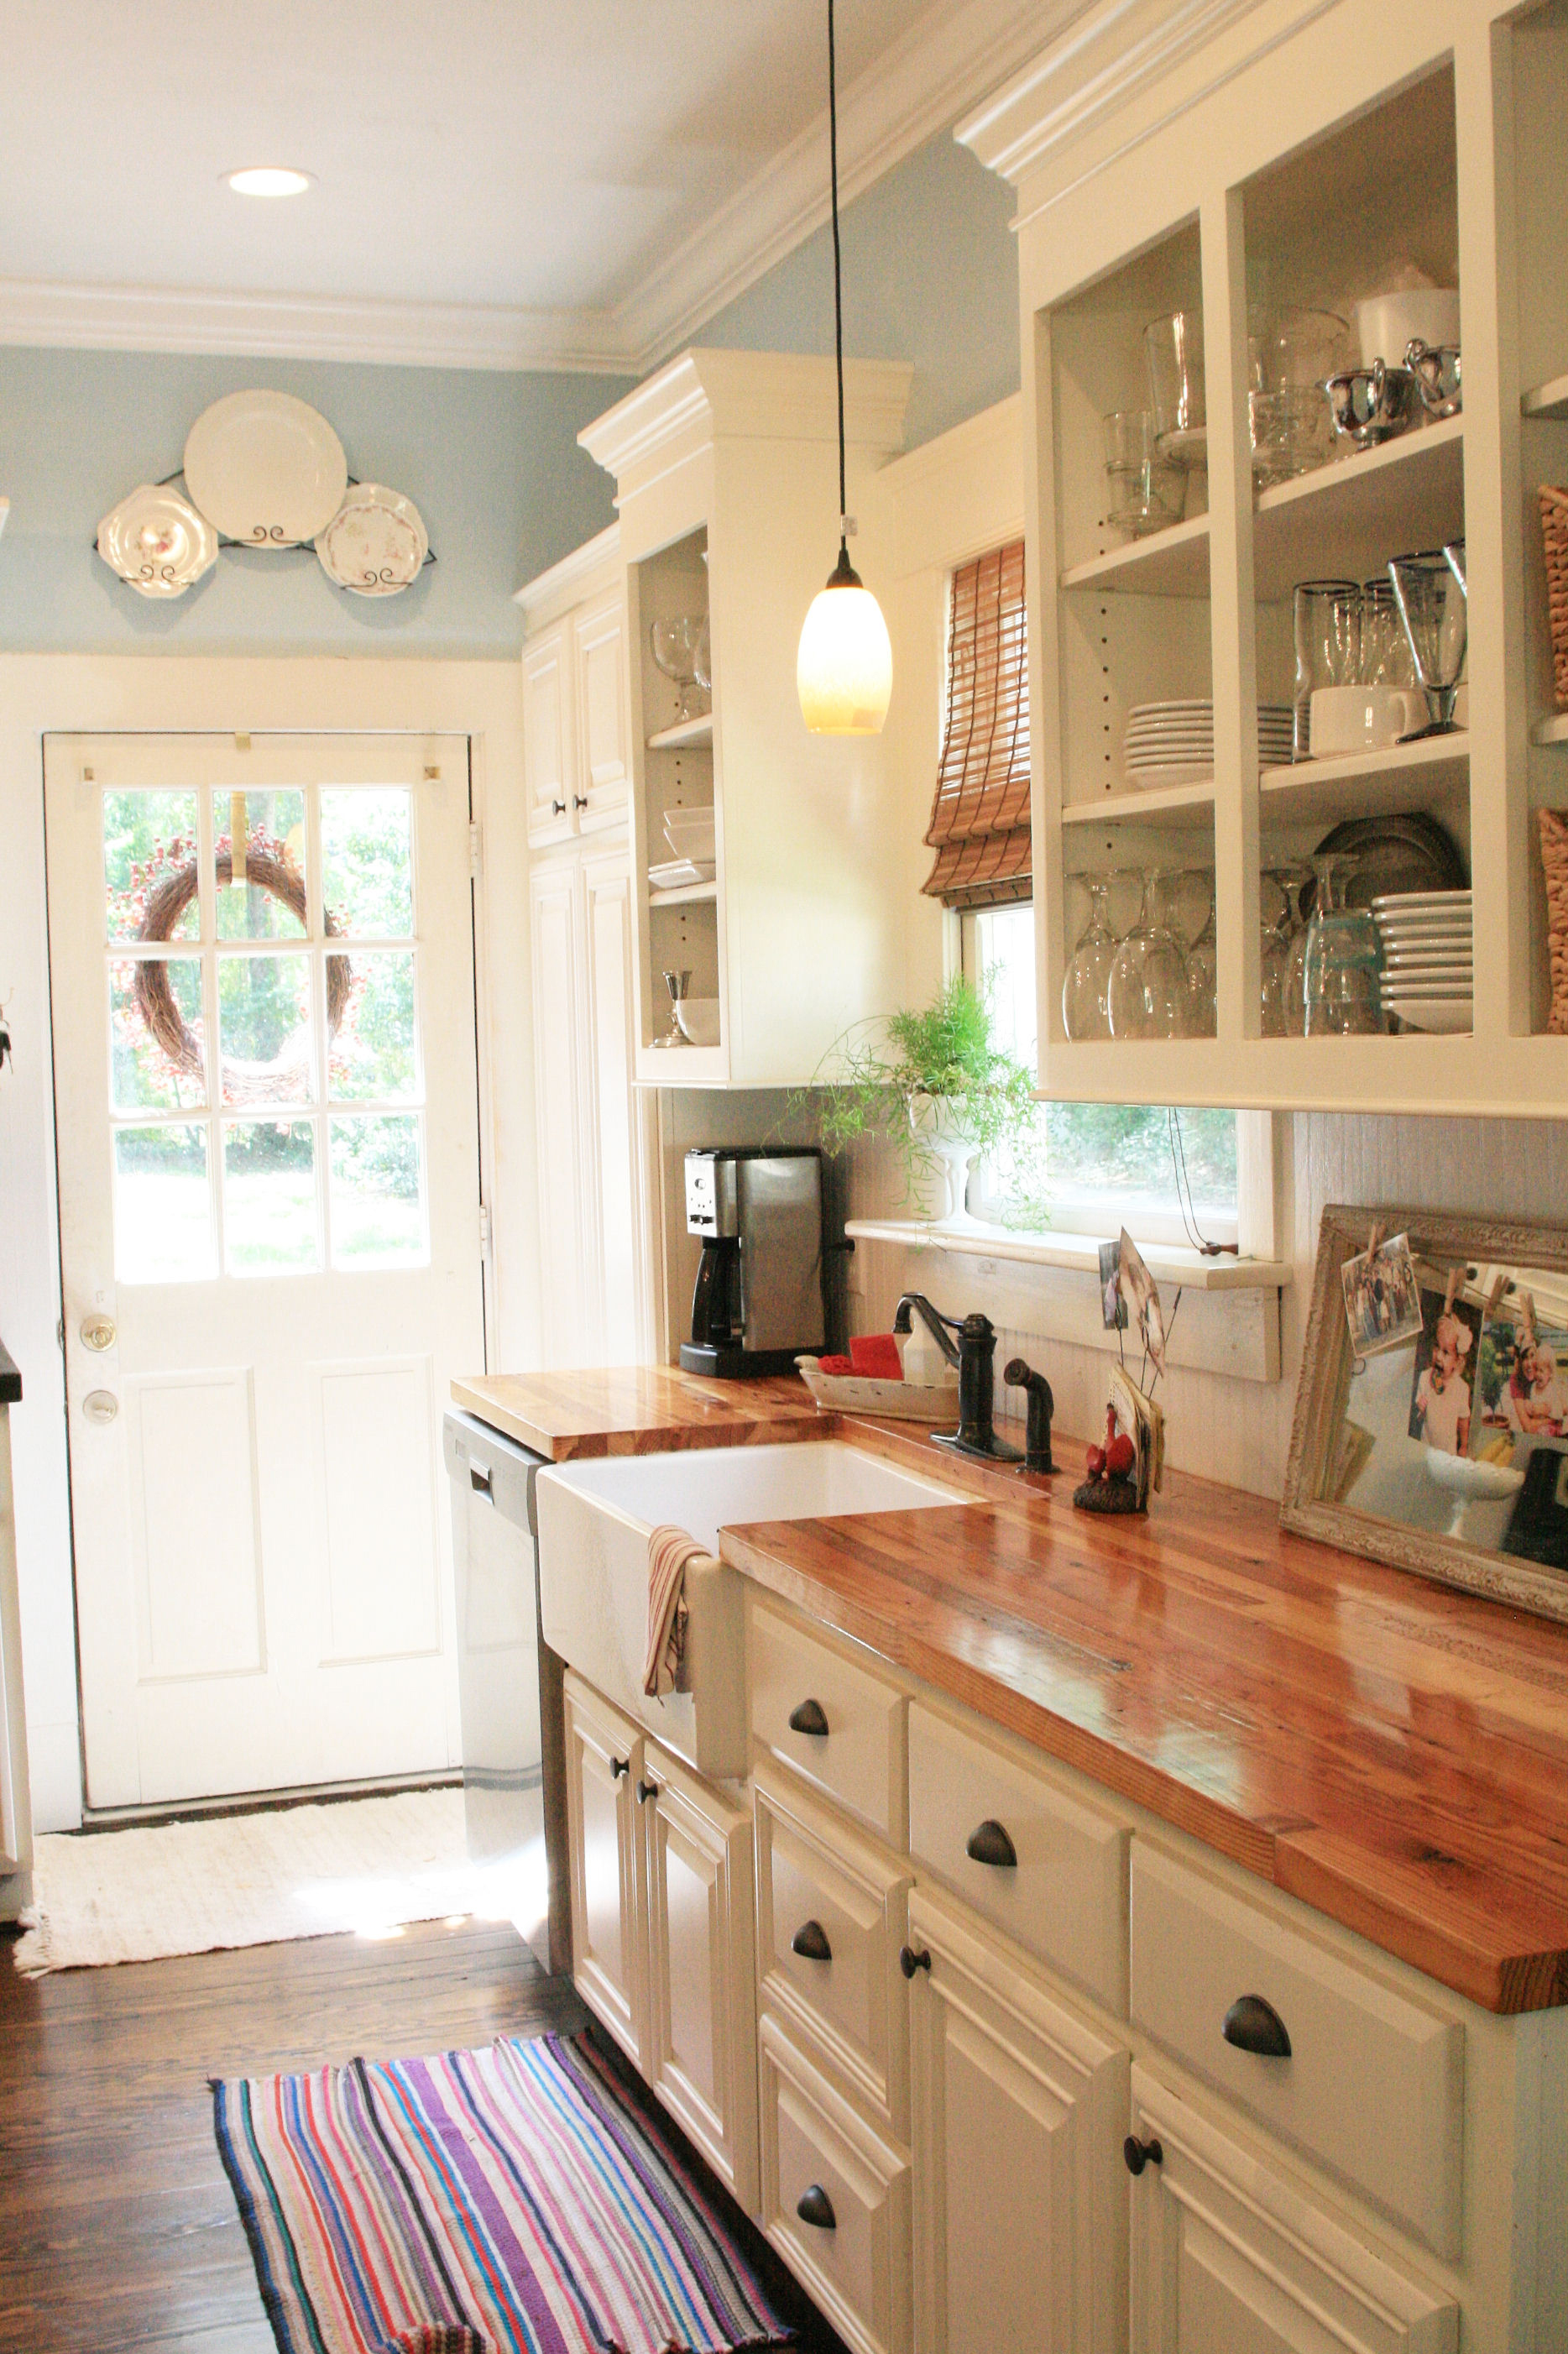 Country kitchen wood countertops add warmth to a clean white kitchen MUJYAQE